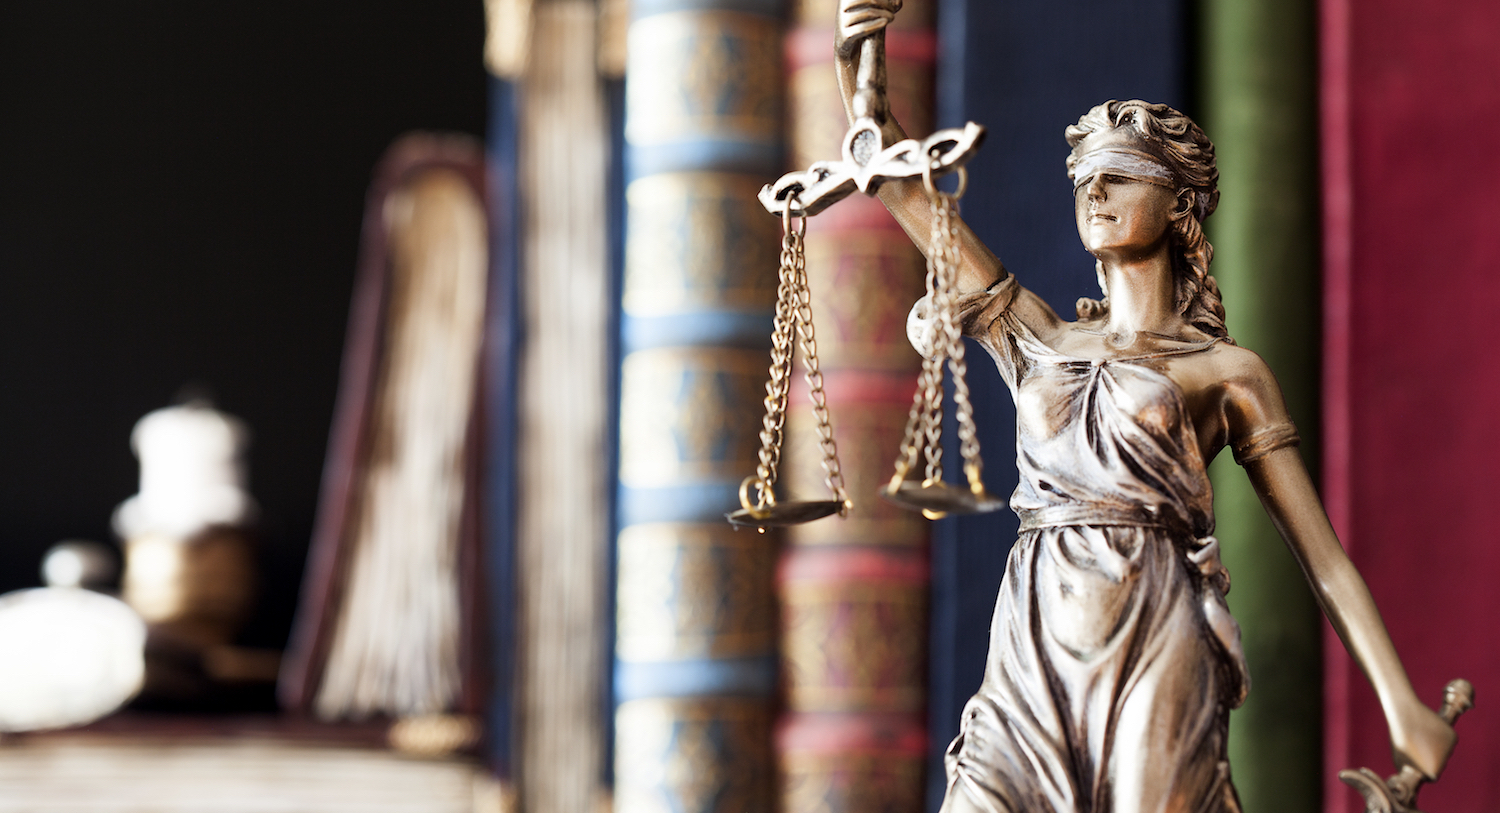 Justice, Statue, Law